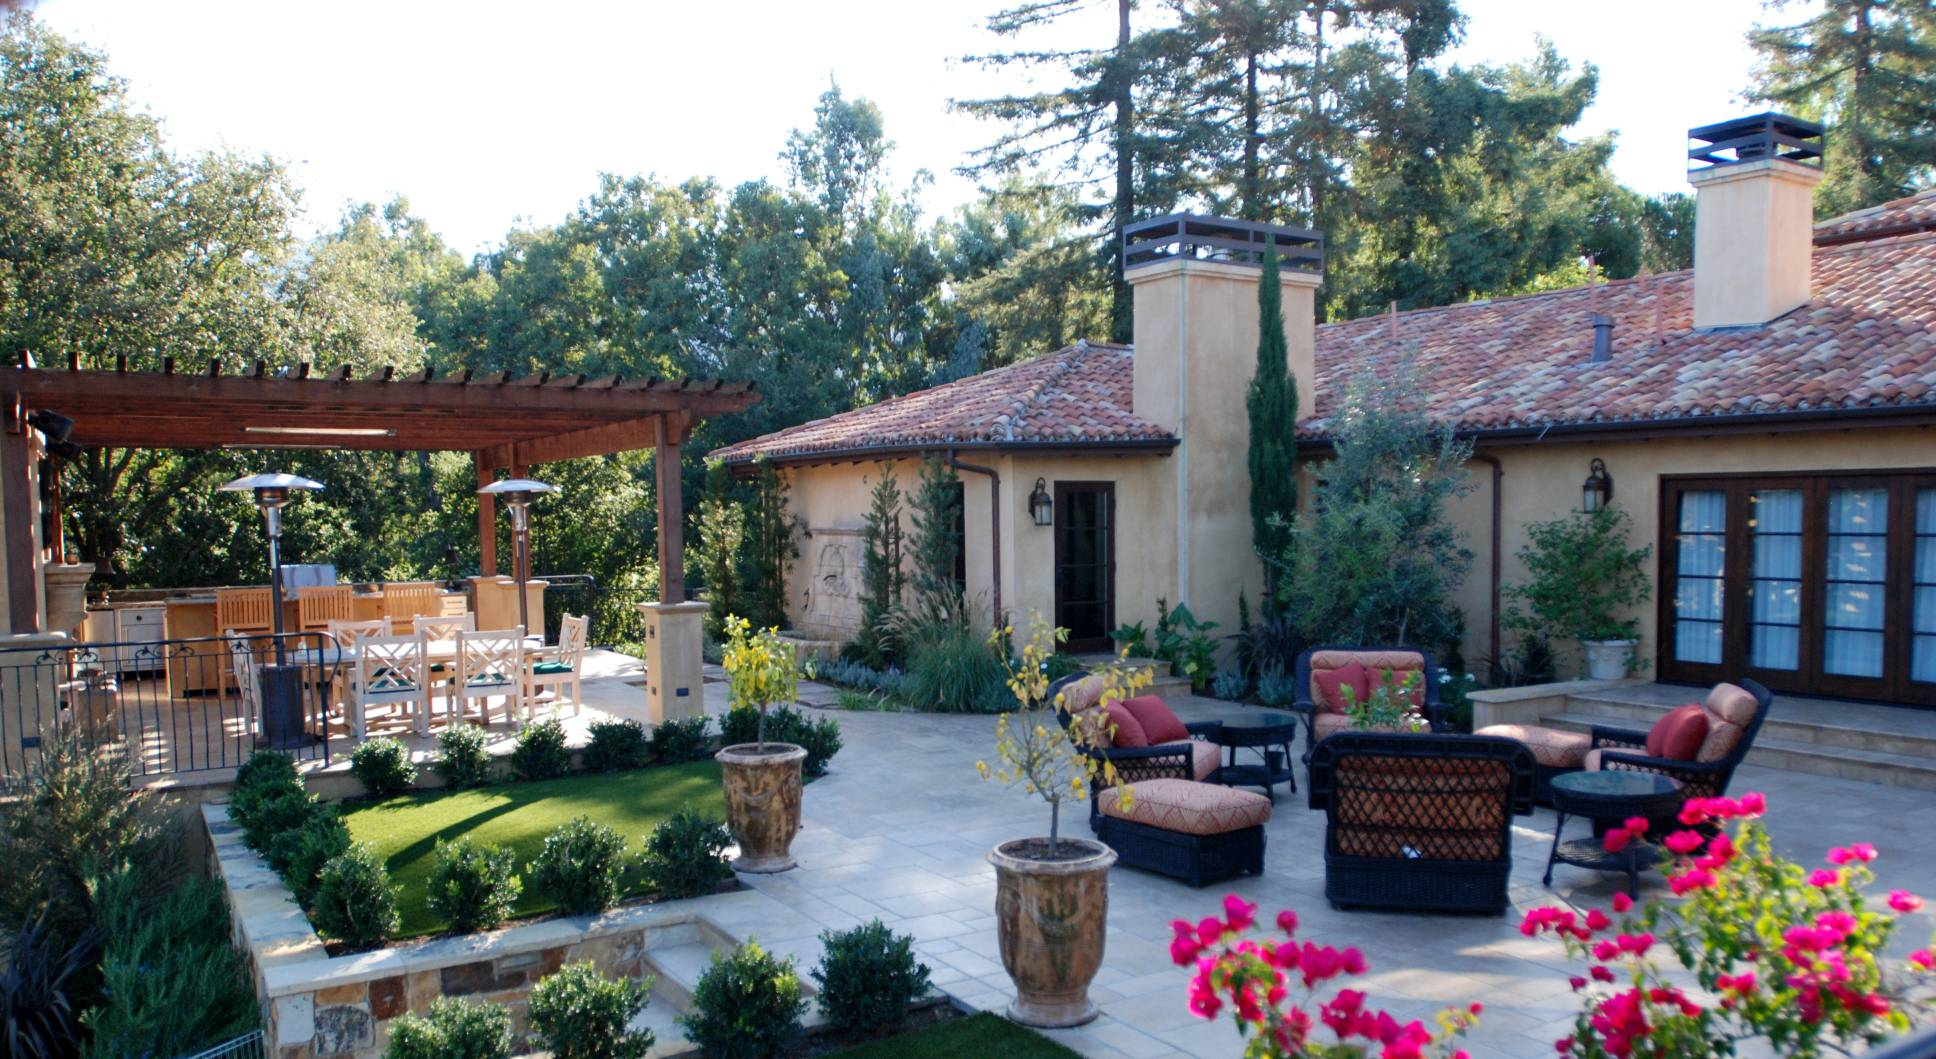 Mediterranian Outdoor Kitchen, best exterior, architect design work, Los Altos Hills